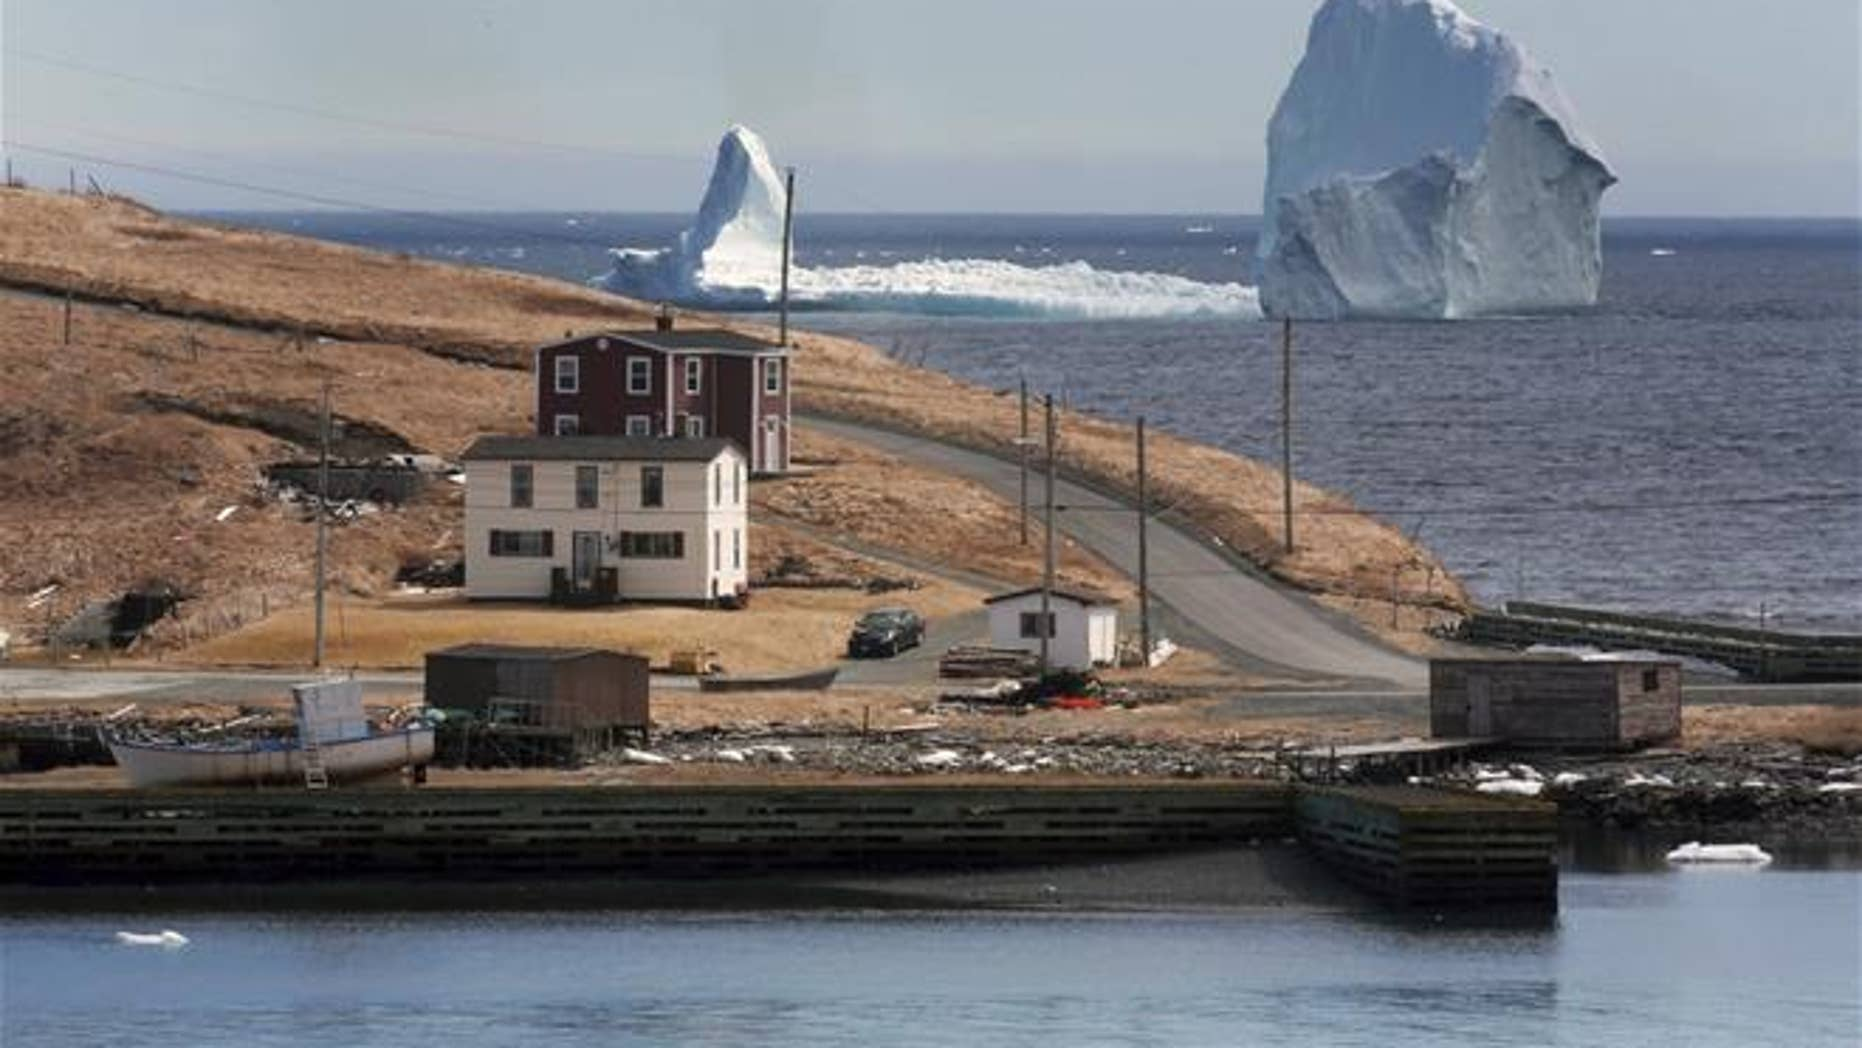 A large iceberg is visible from the shore in Ferryland, an hour south of St. John's, Newfoundland on Monday, April 10, 2017.